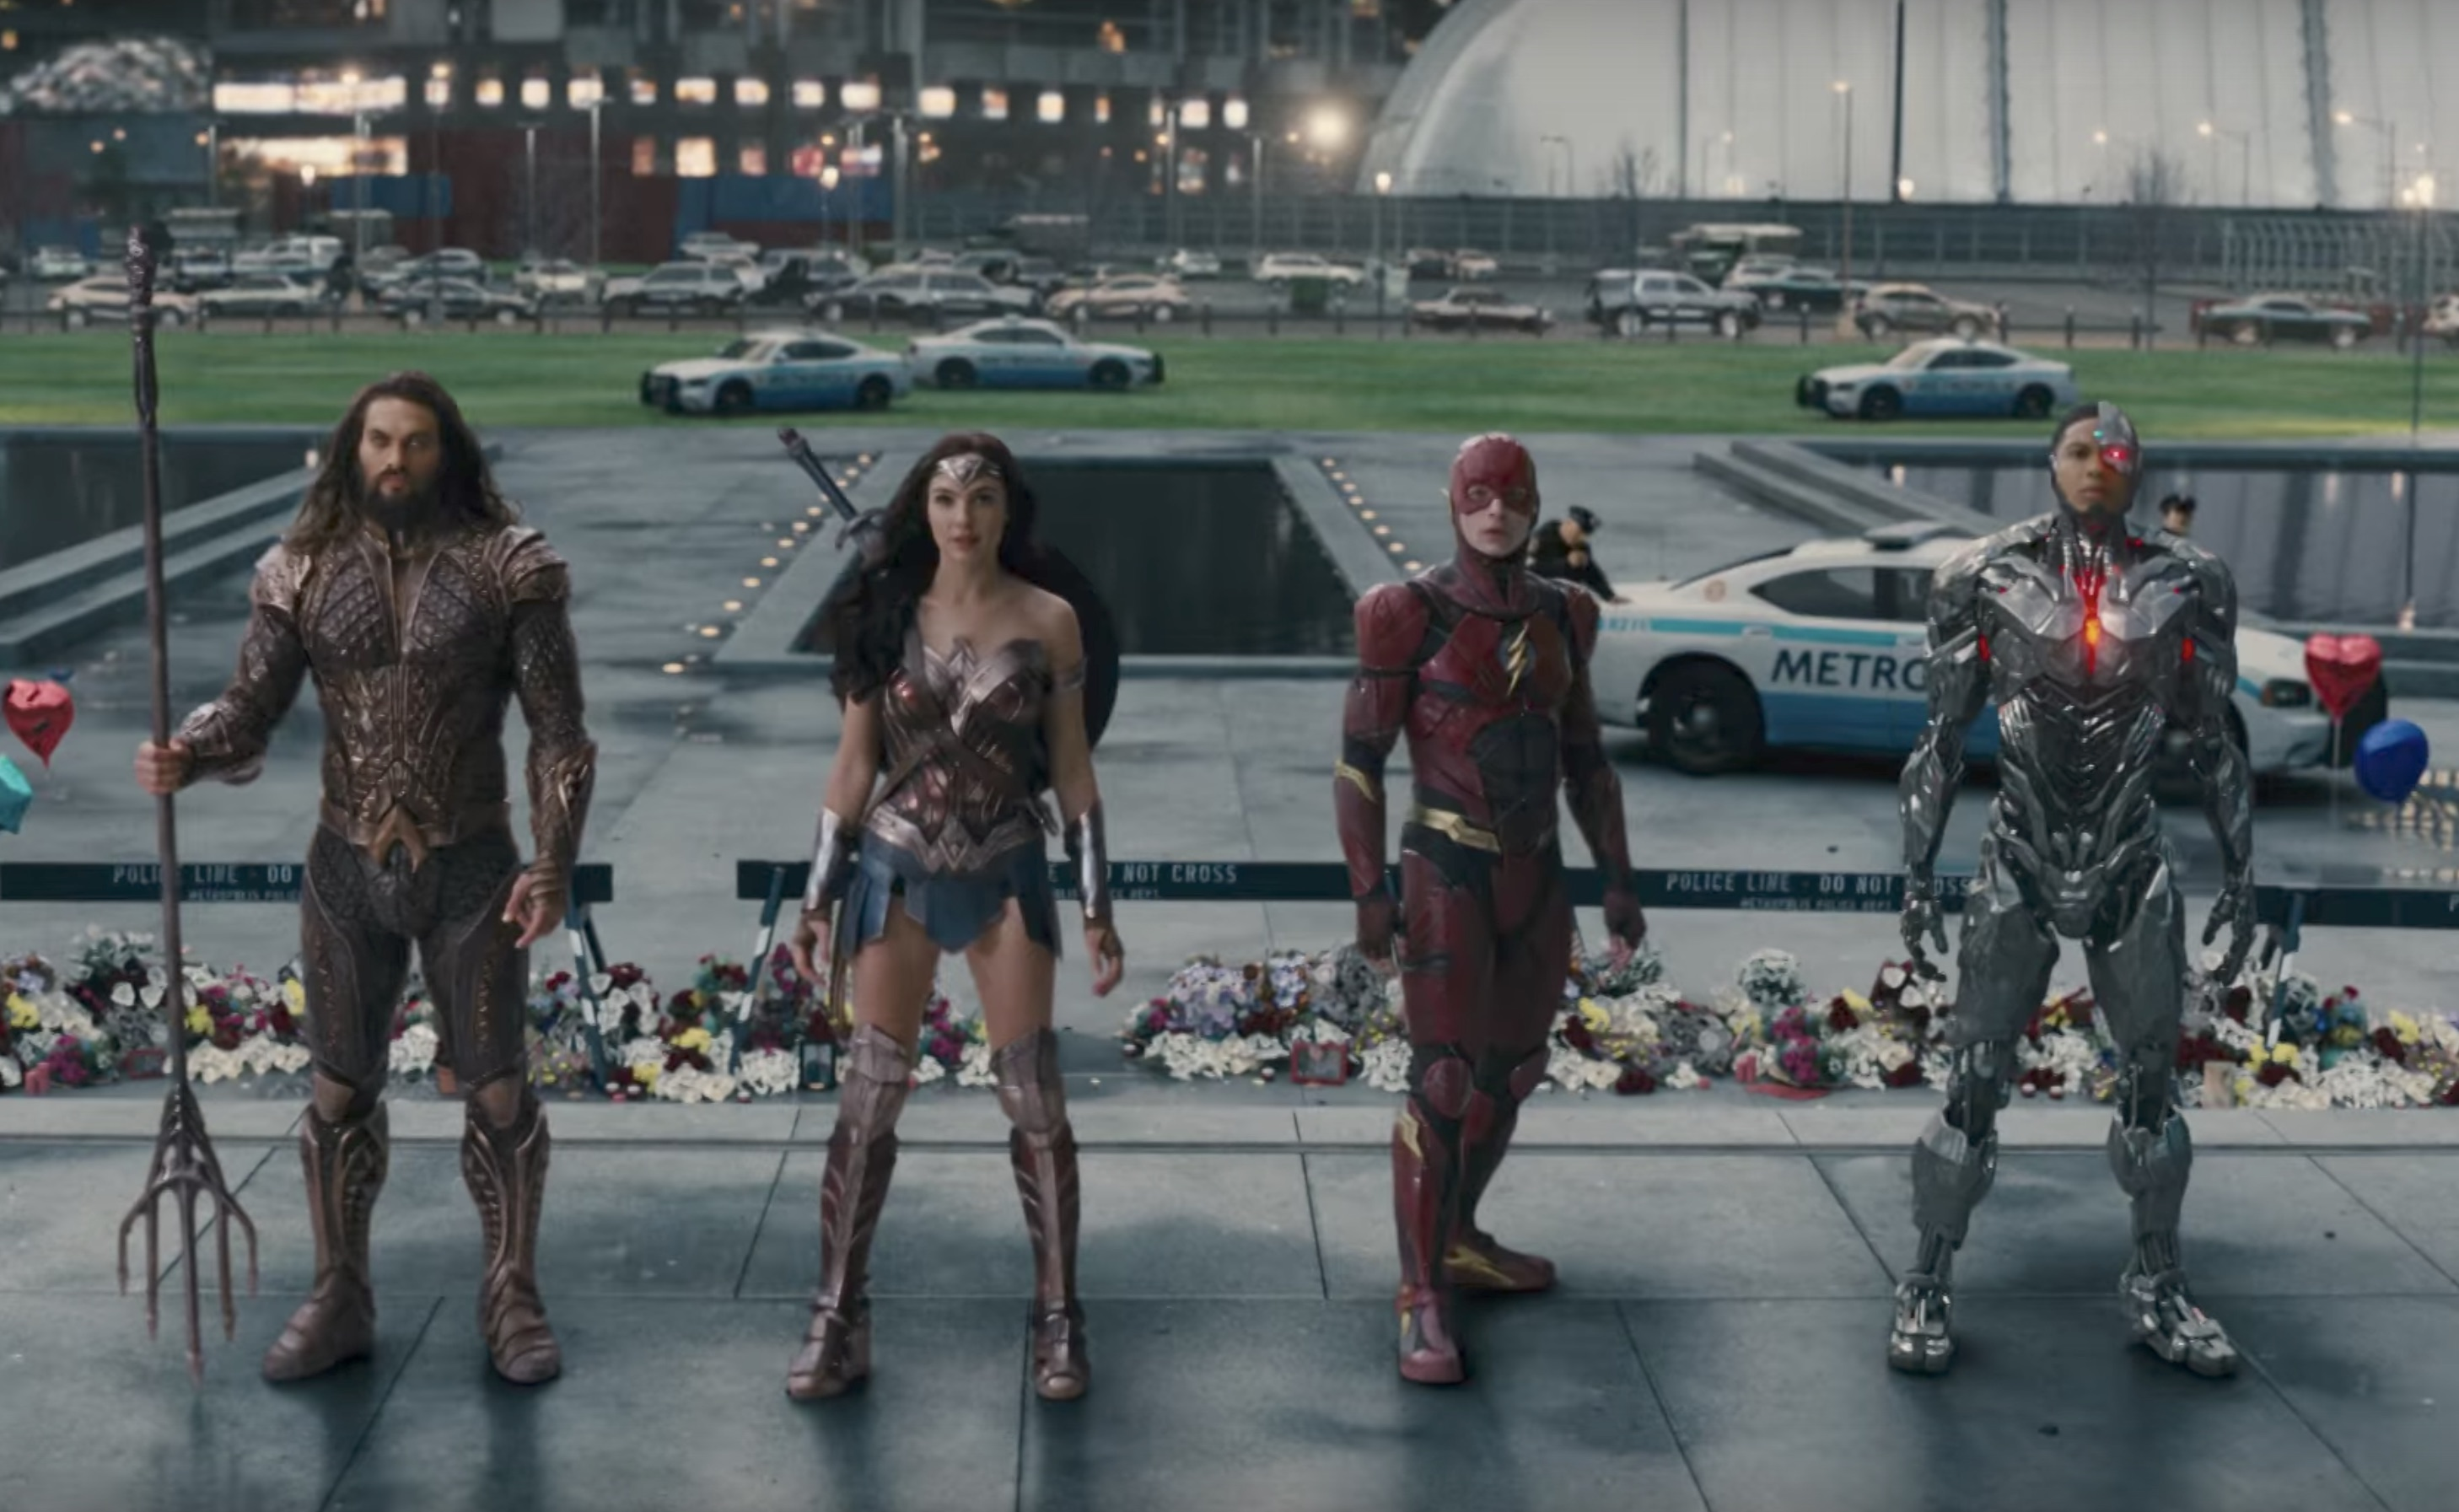 Review: Well, Justice League is a movie